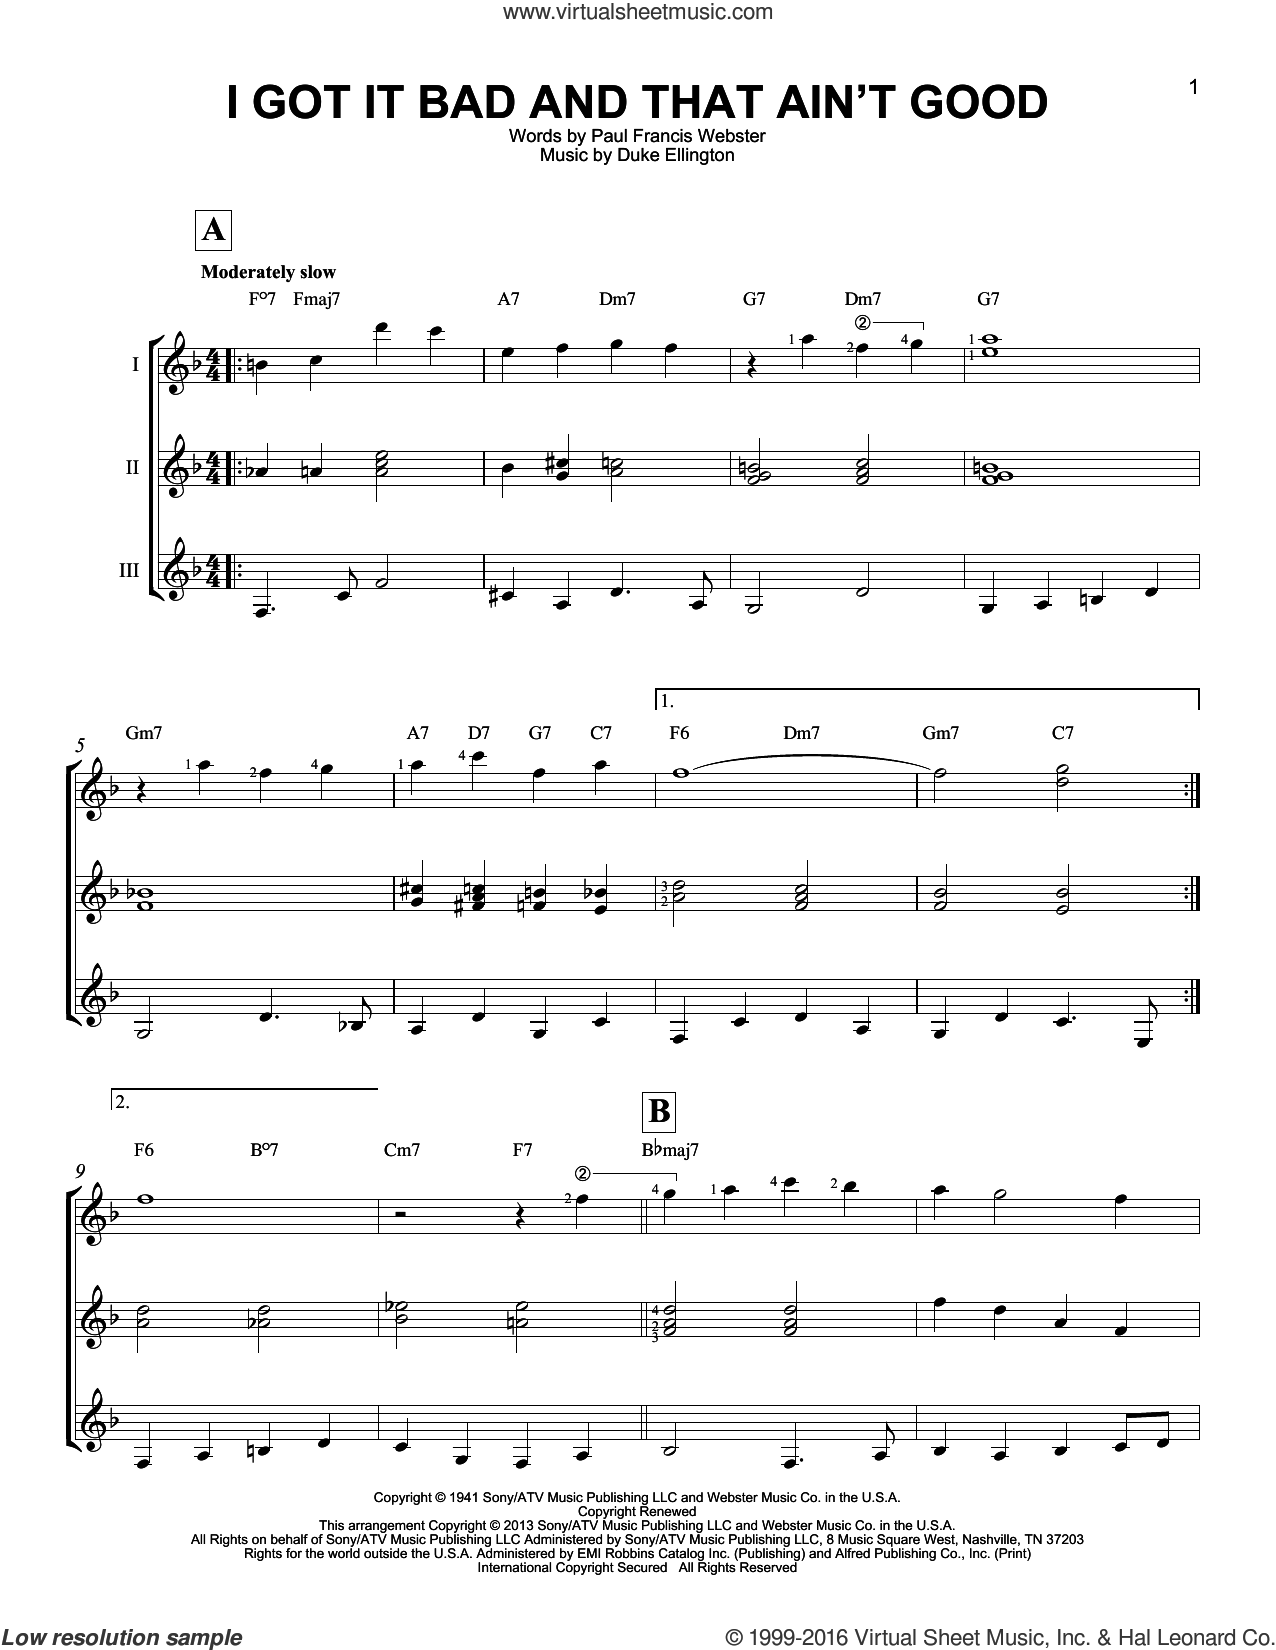 I Got It Bad And That Ain't Good sheet music for guitar ensemble by Duke Ellington and Paul Francis Webster, intermediate skill level